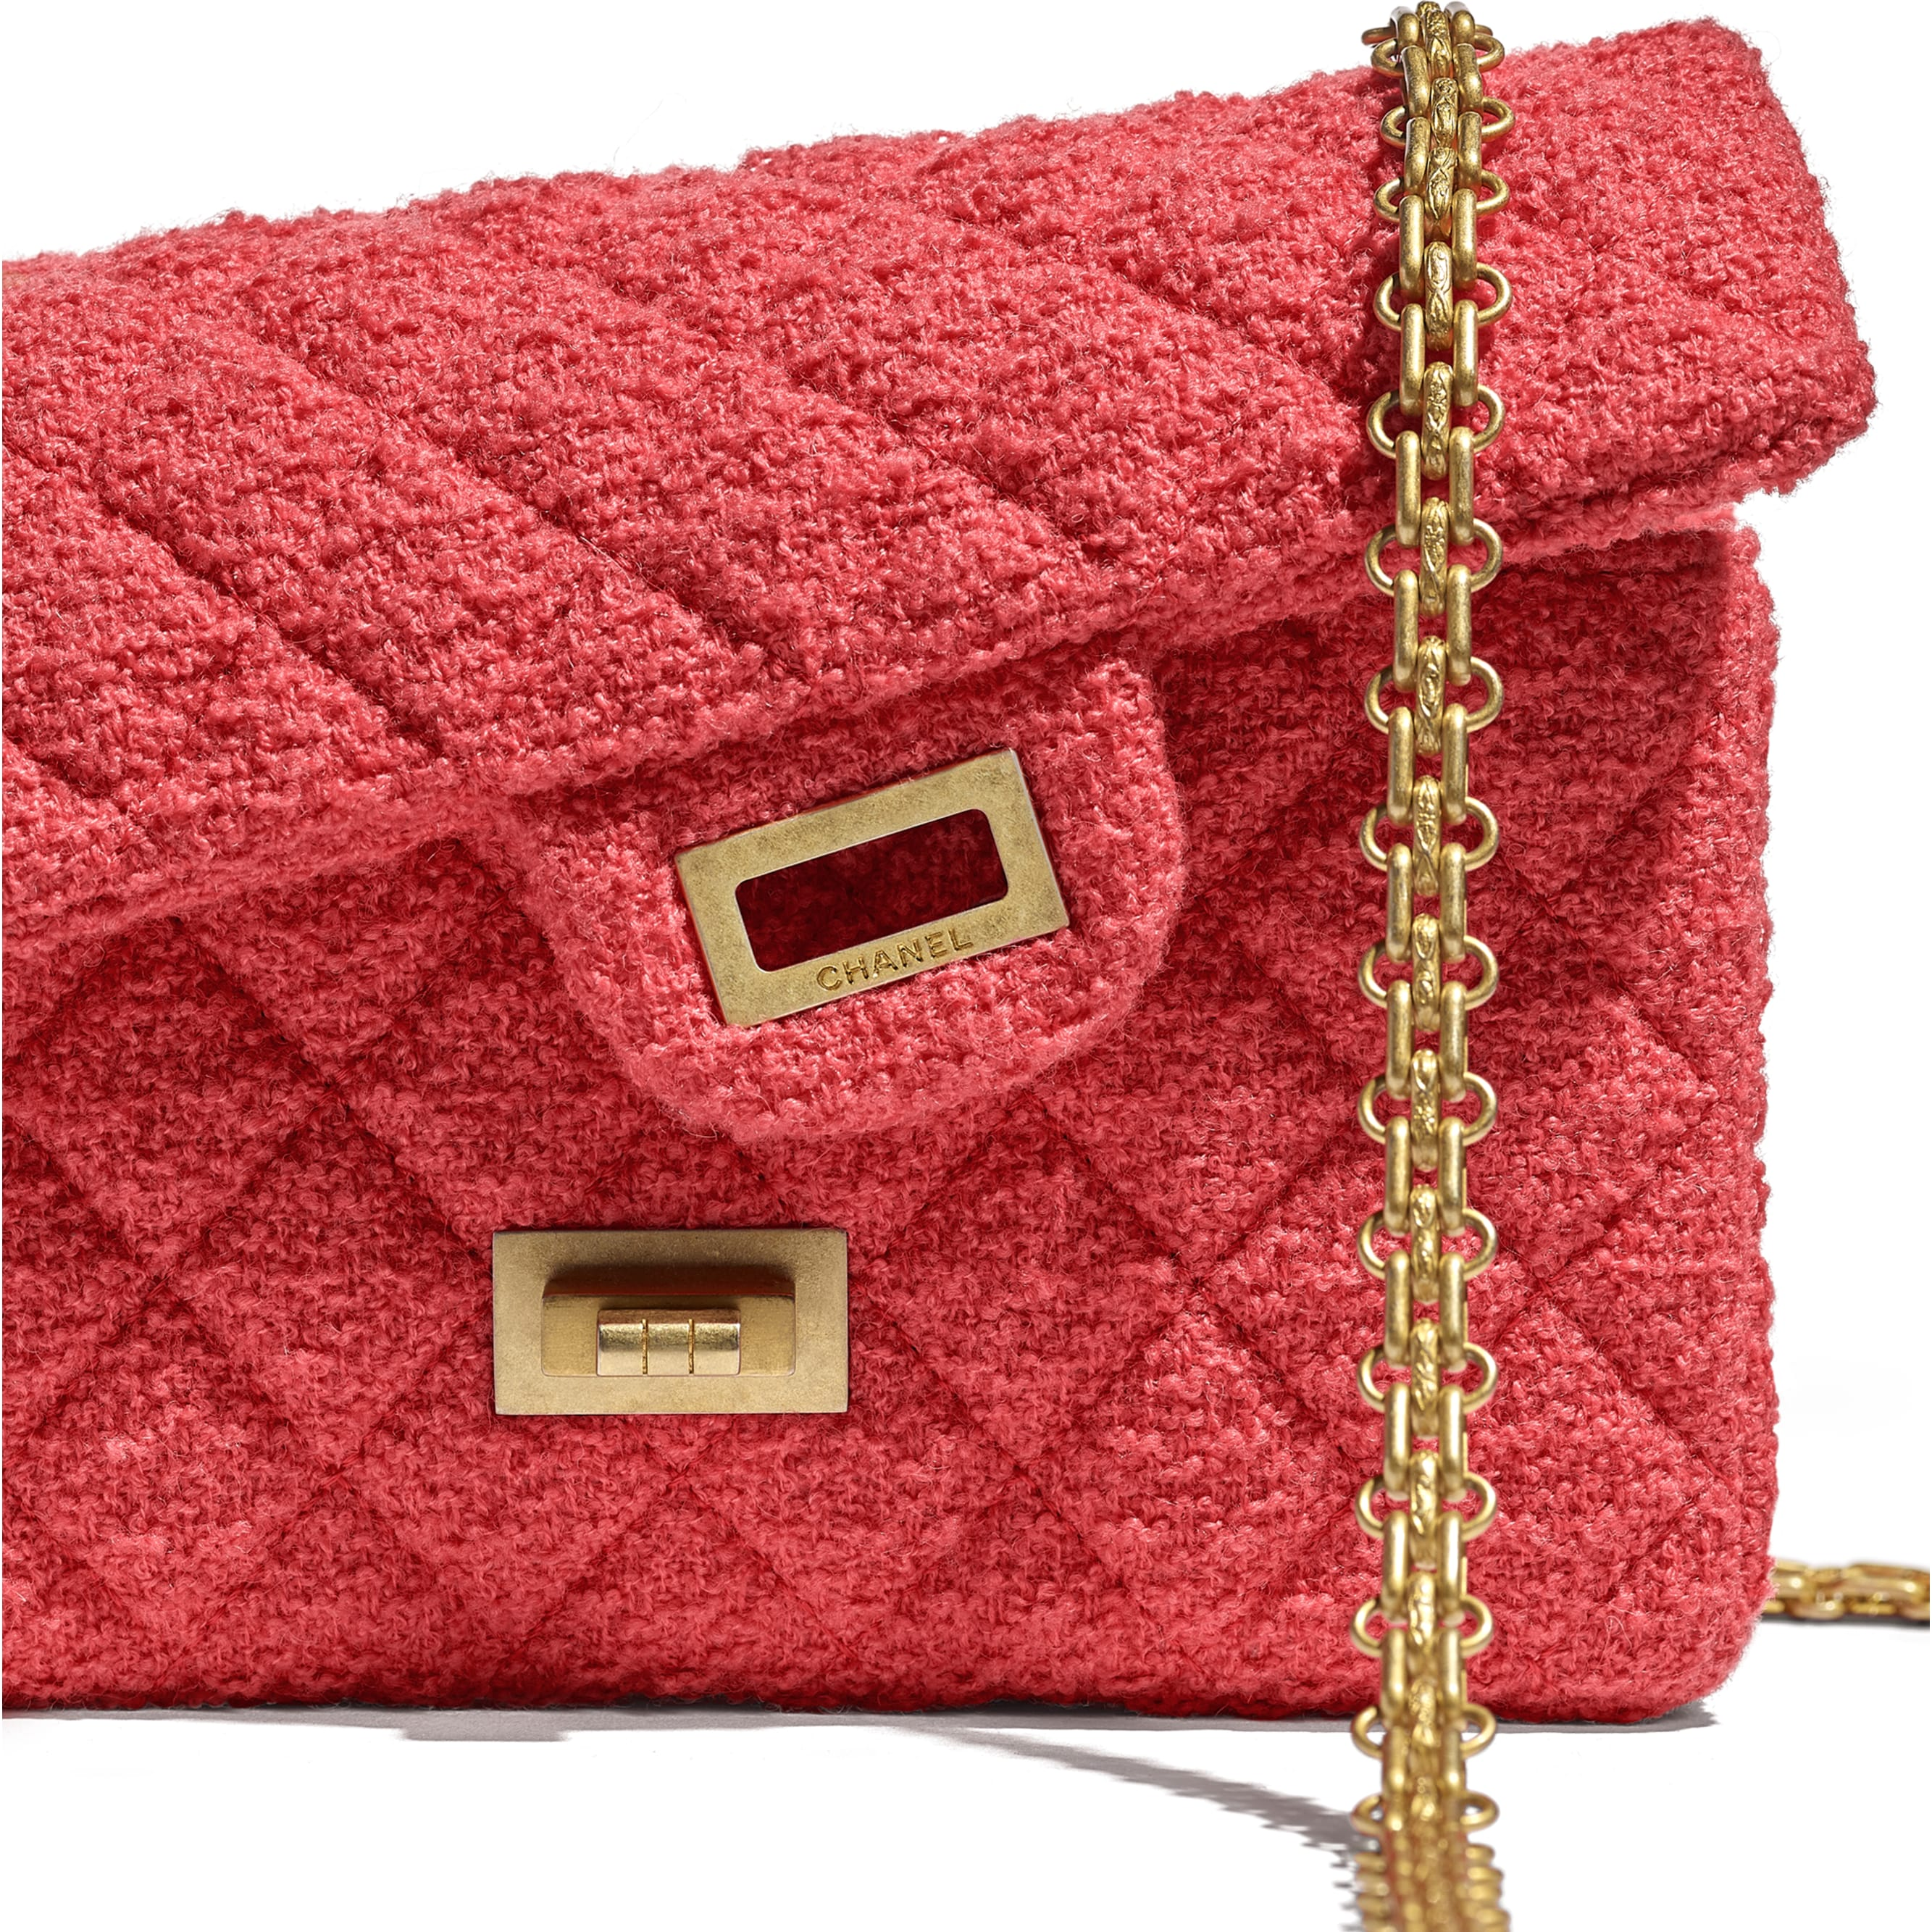 Mini 2.55 Handbag - Coral - Wool Tweed & Gold-Tone Metal - CHANEL - Extra view - see standard sized version